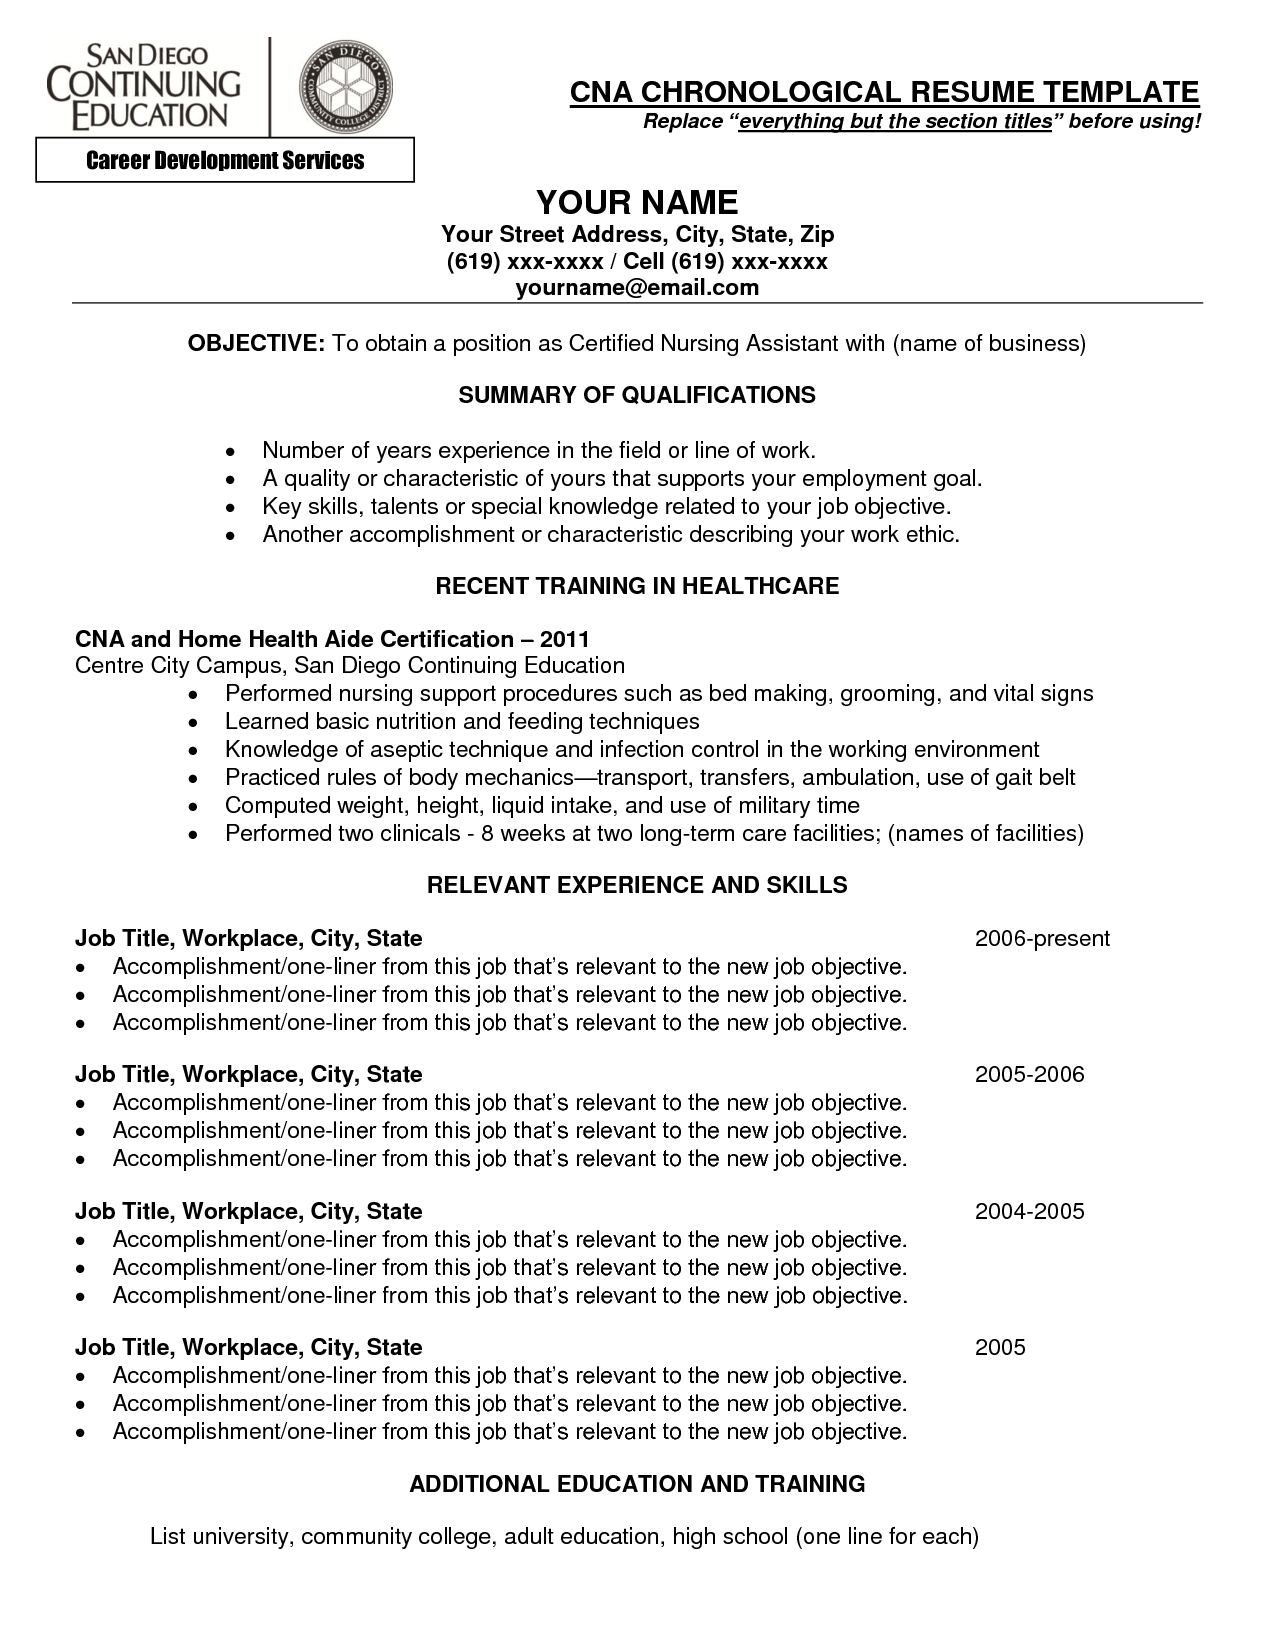 cna chronological resume template with relevant experience